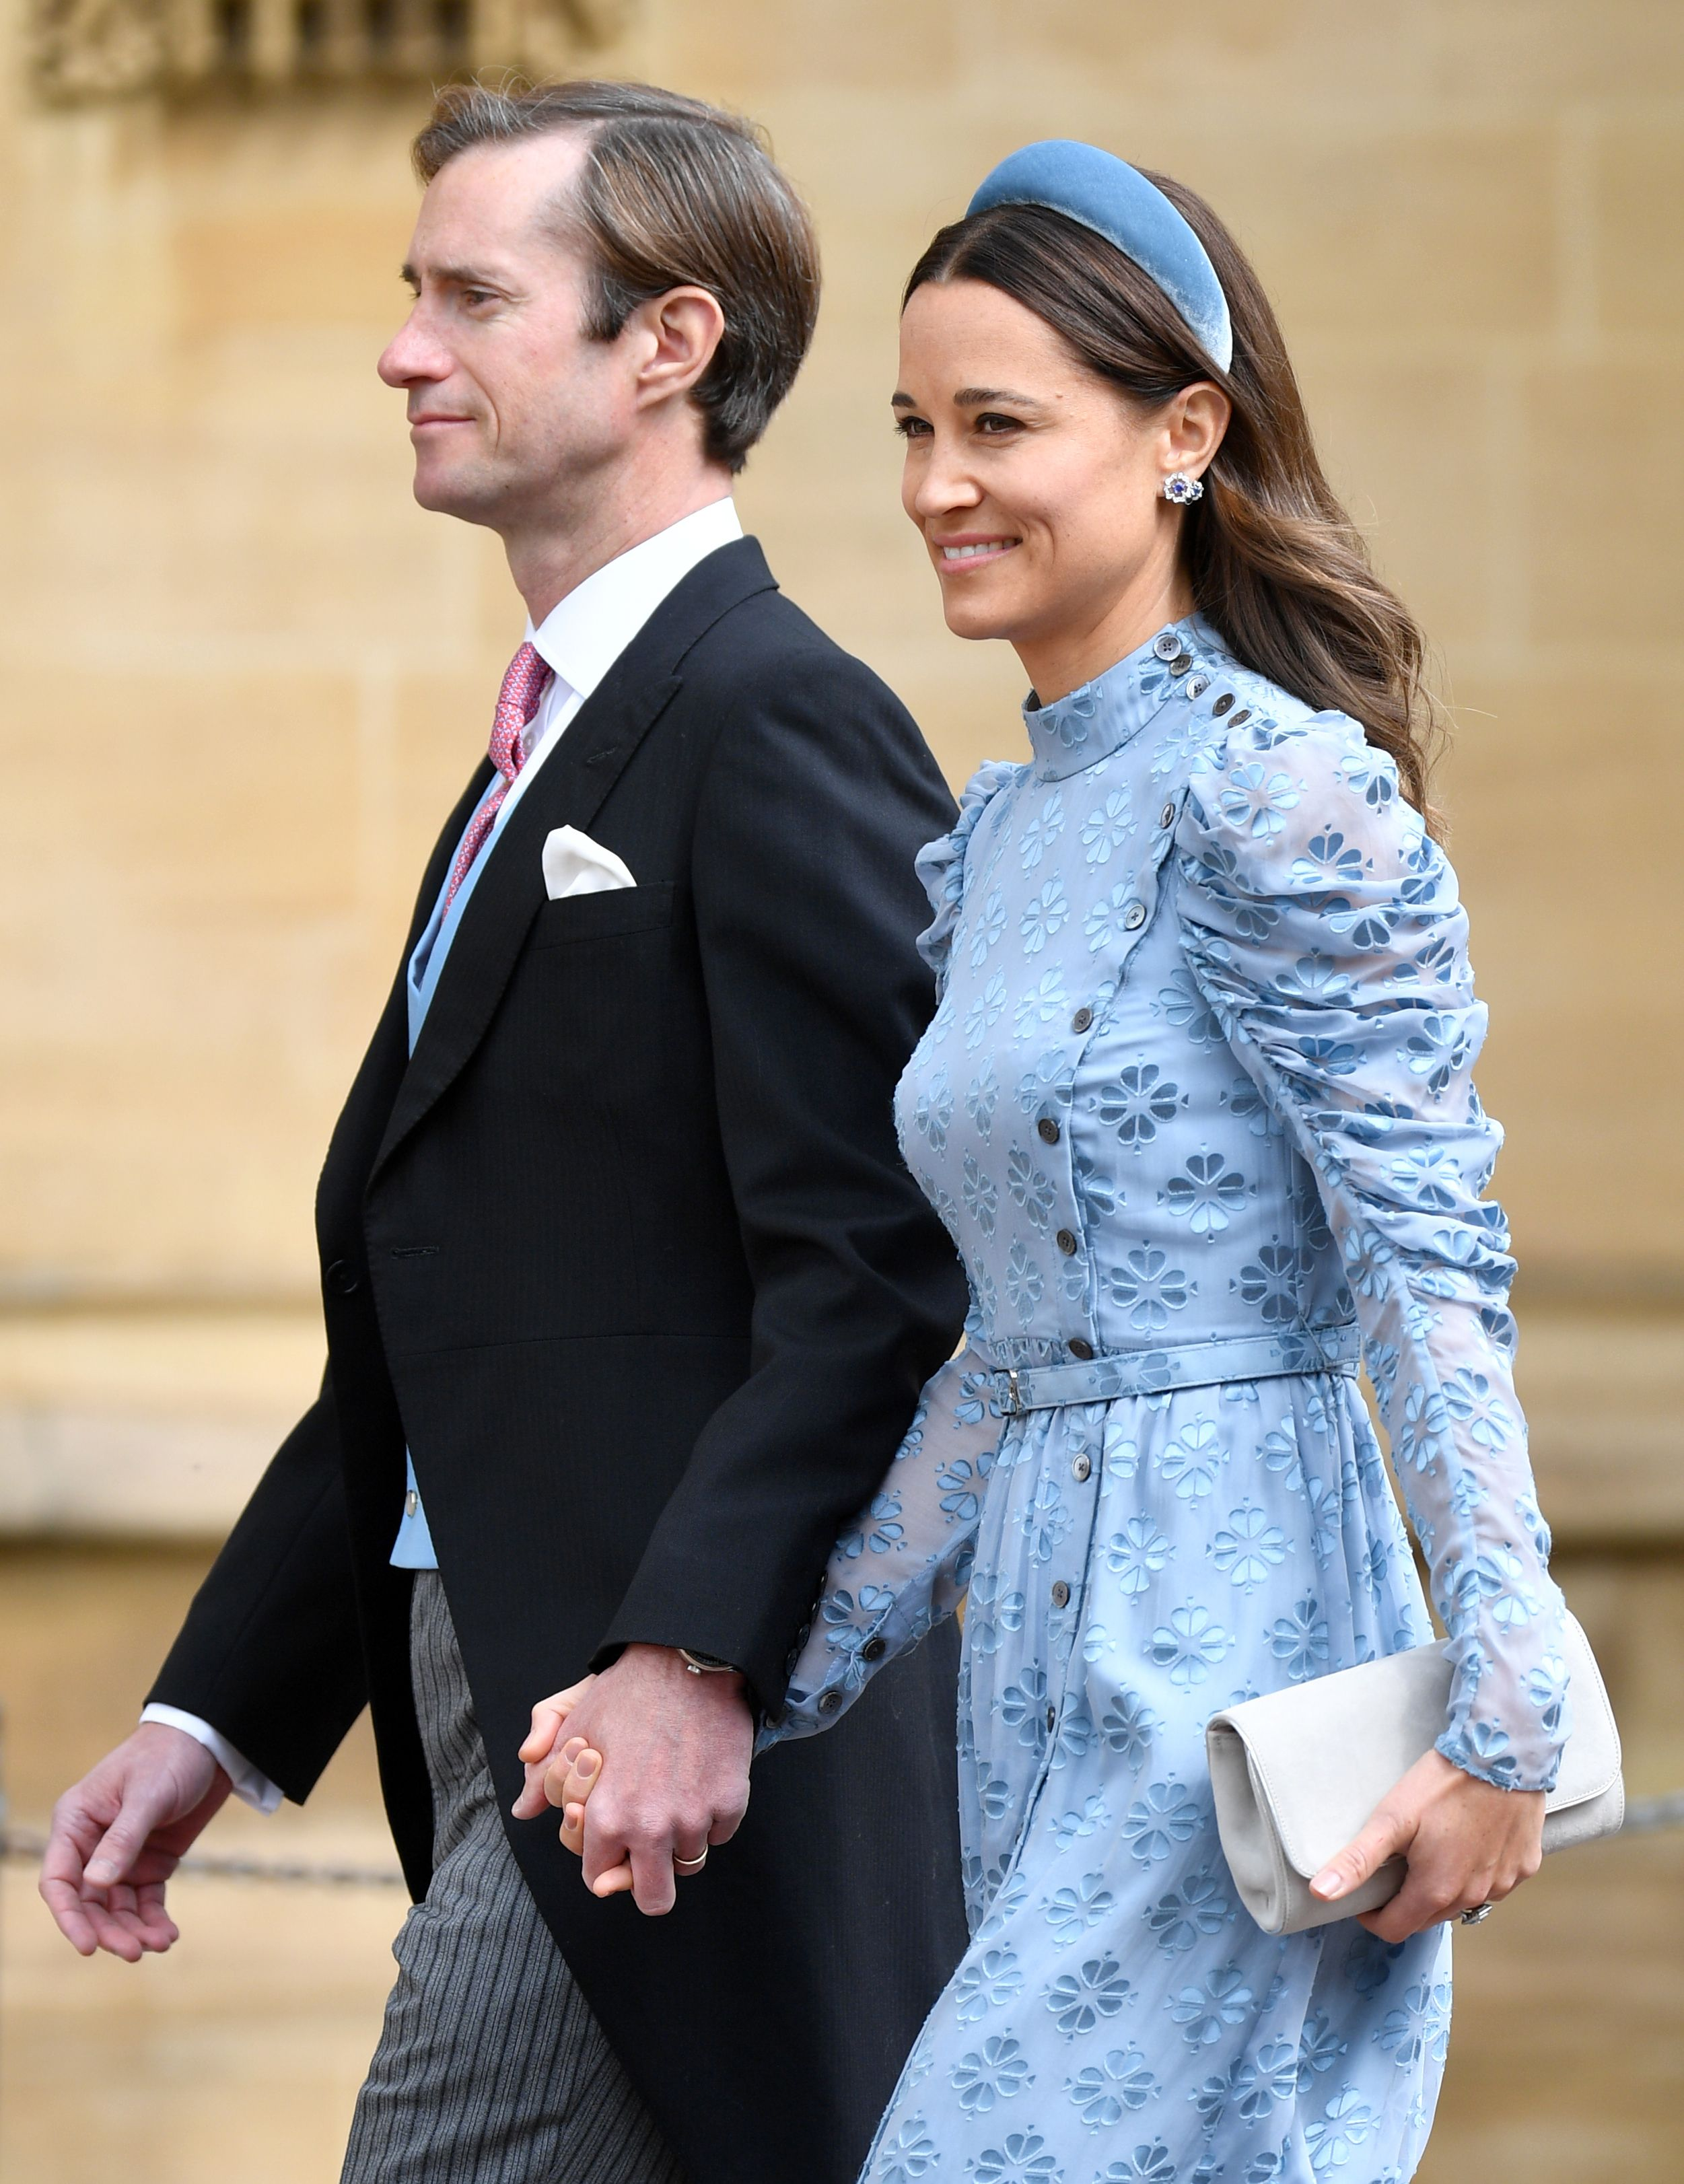 James Matthews and Pippa Middleton at the wedding of Lady Gabriella Windsor and Thomas Kingston at St George's Chapel on May 18, 2019 | Photo: Getty Images